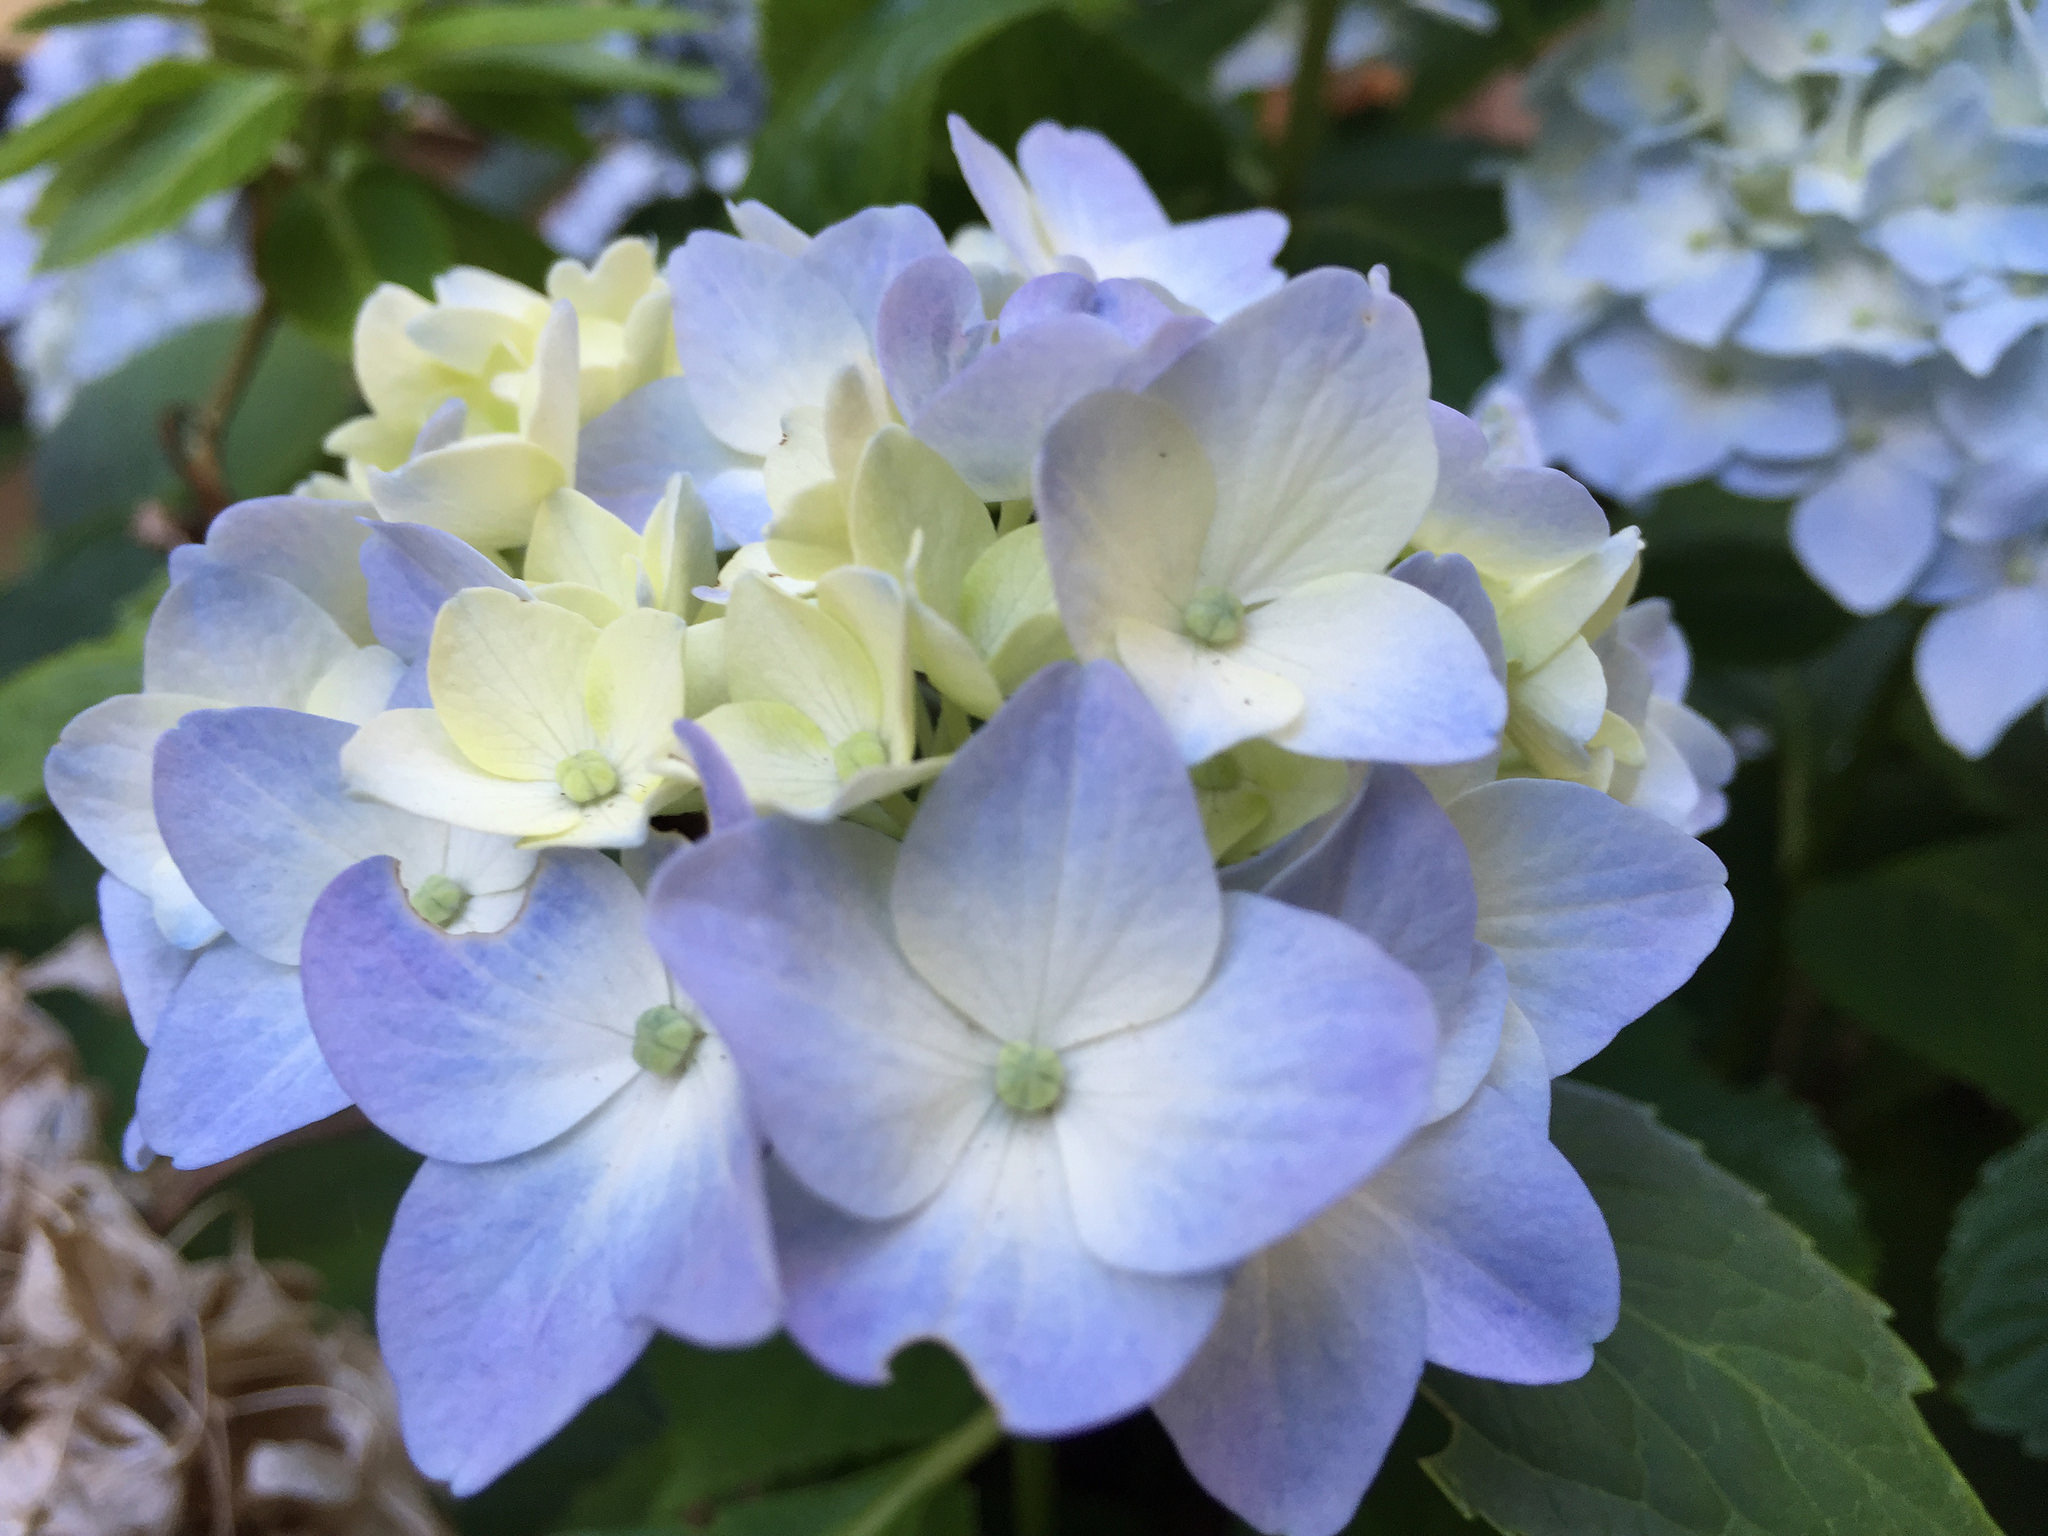 Hydrangeas play a pretty role in the garden